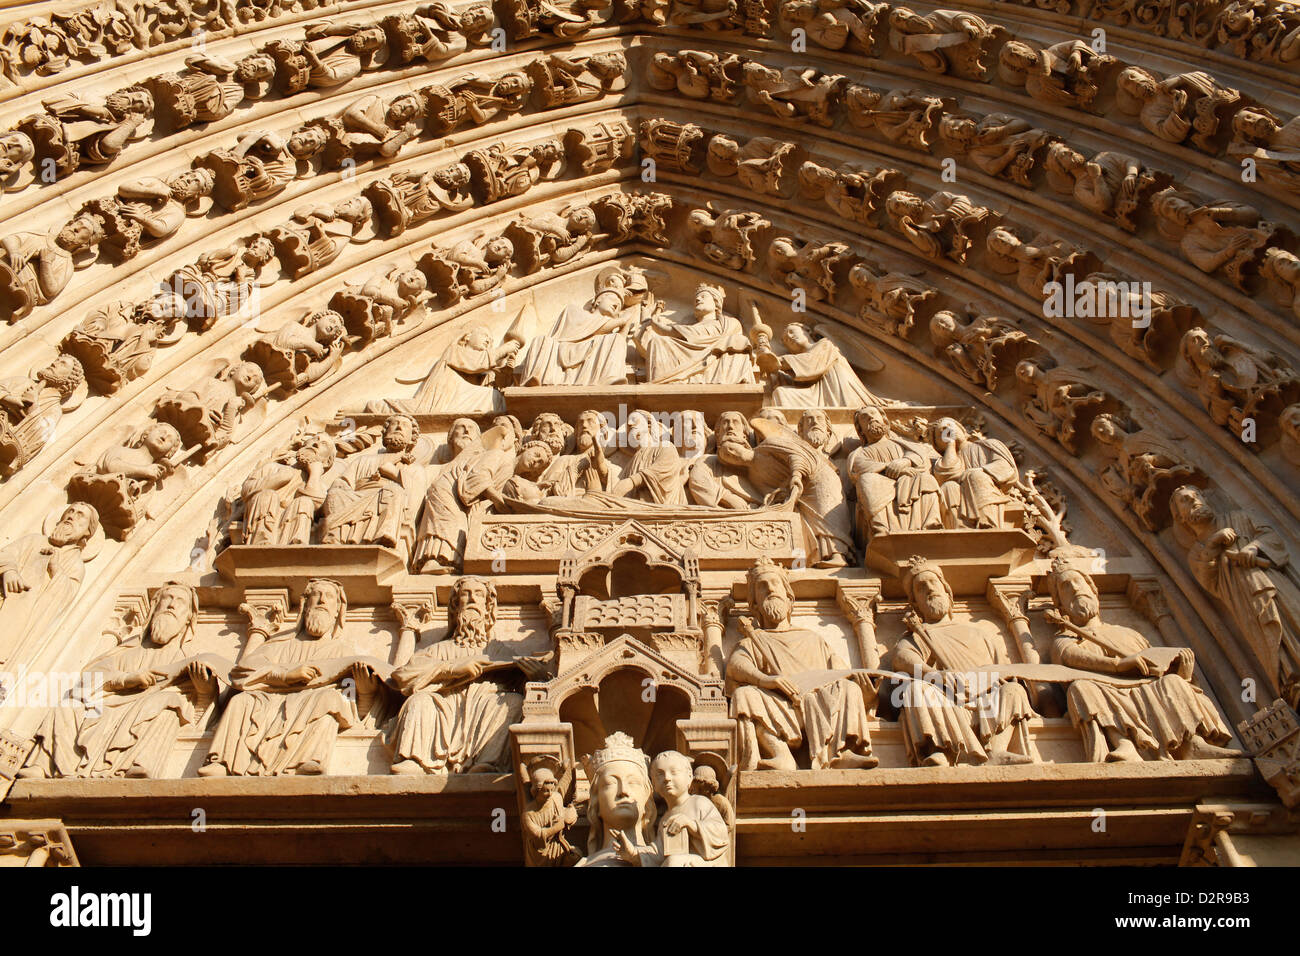 Virgin's Gate tympanum, Western facade, Notre Dame Cathedral, Paris, France, Europe - Stock Image